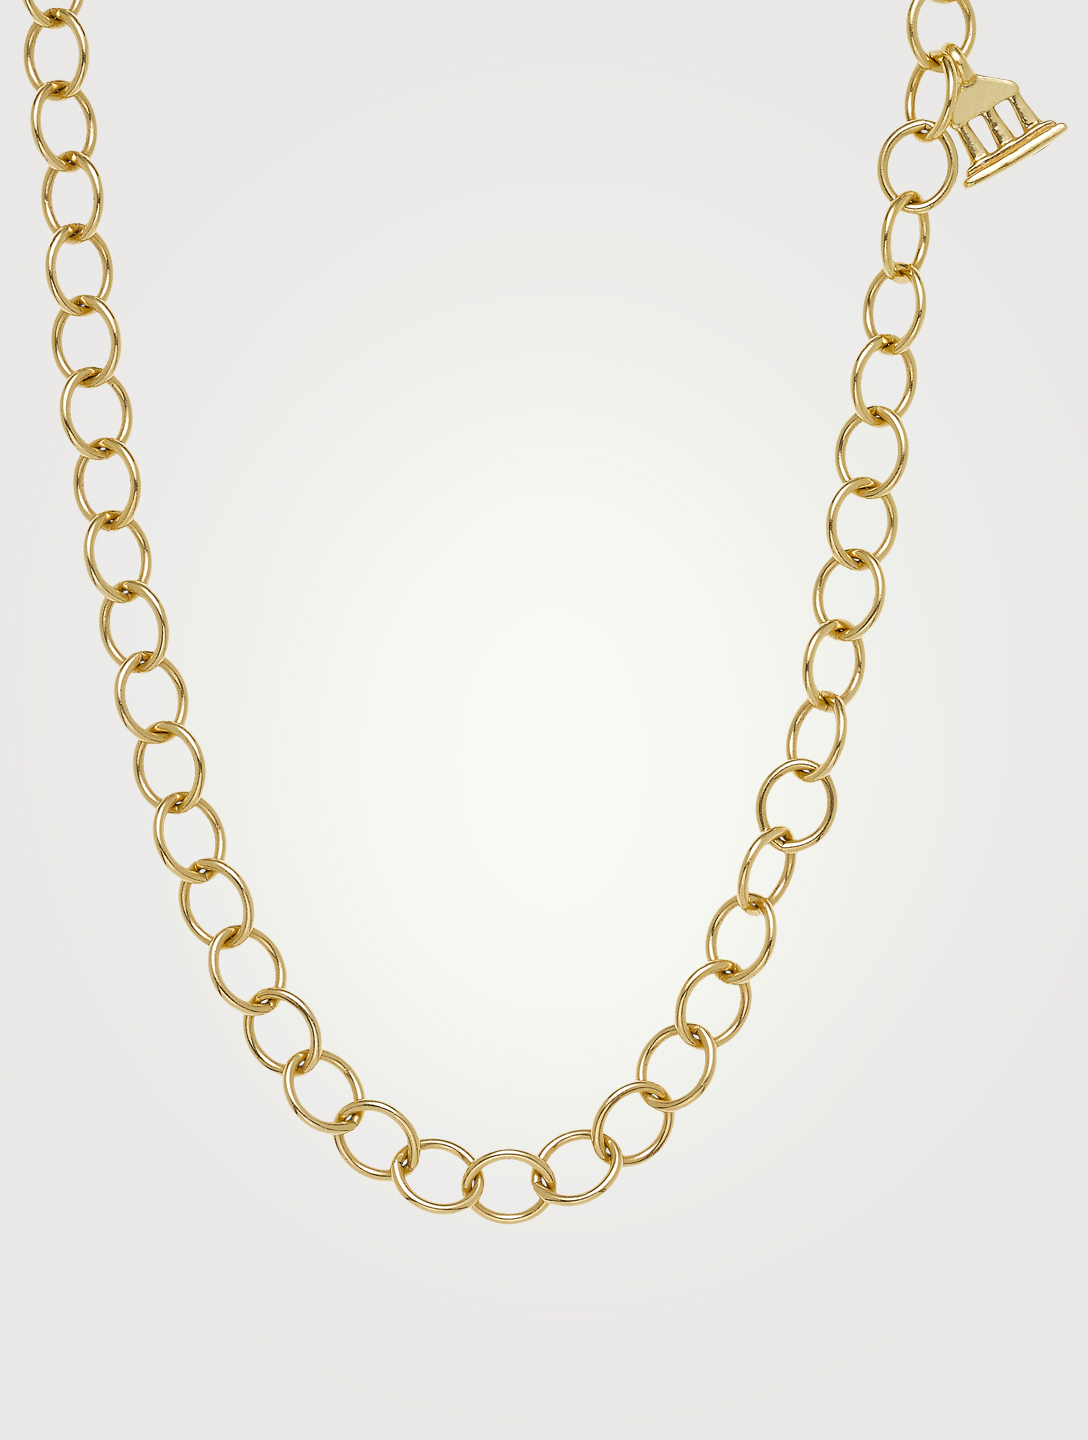 TEMPLE ST. CLAIR 18K Gold Classic Oval Chain Women's Gold